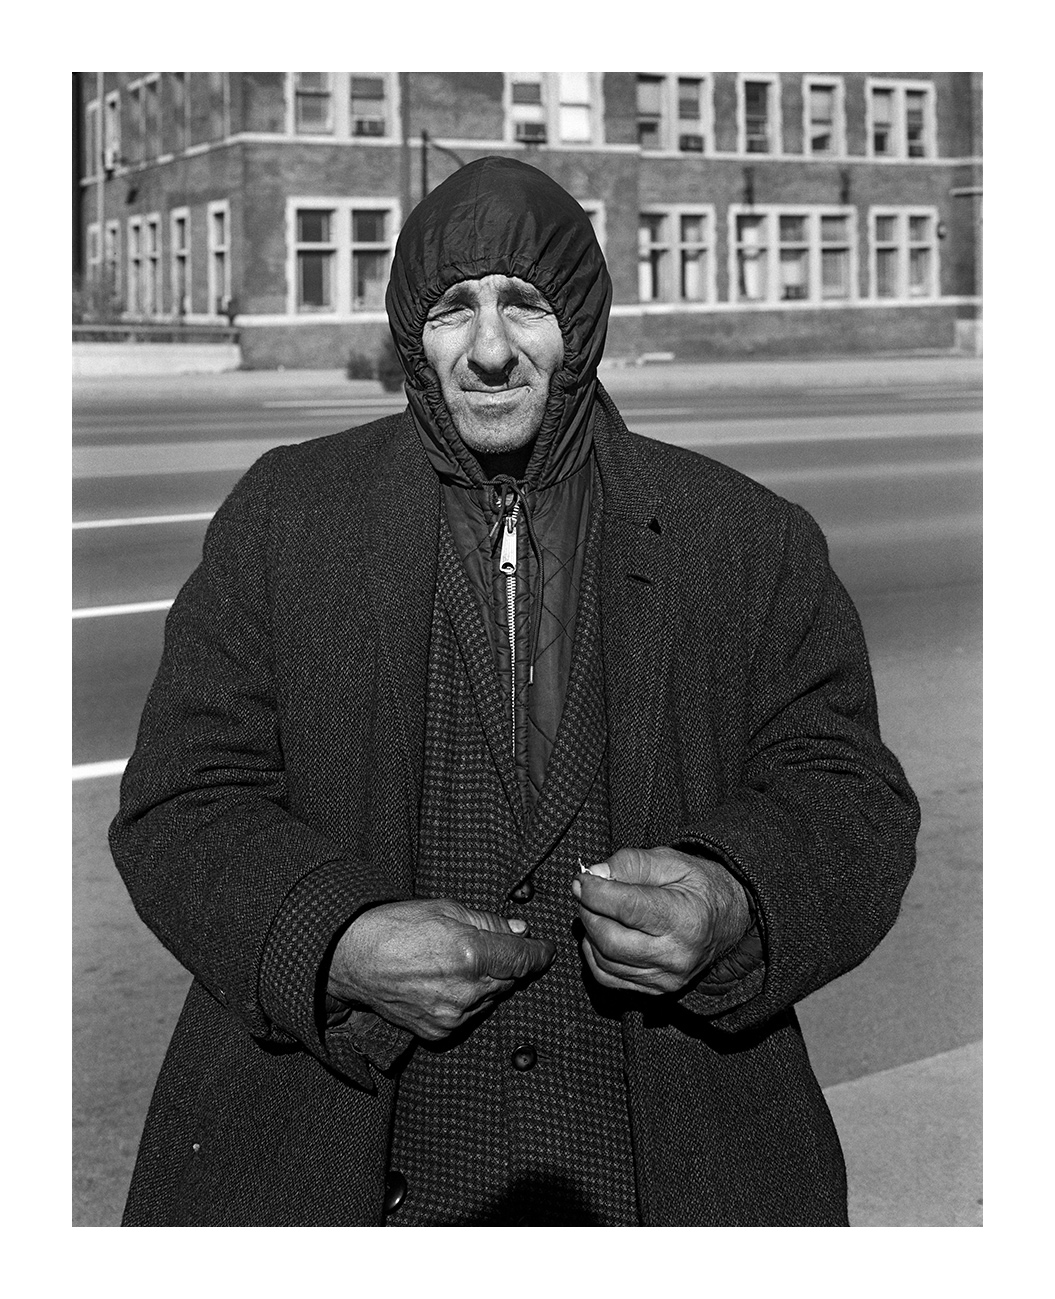 A Man Wearing Several Coats Holding a Piece of Paper, Detroit, MI 3 Nov 73